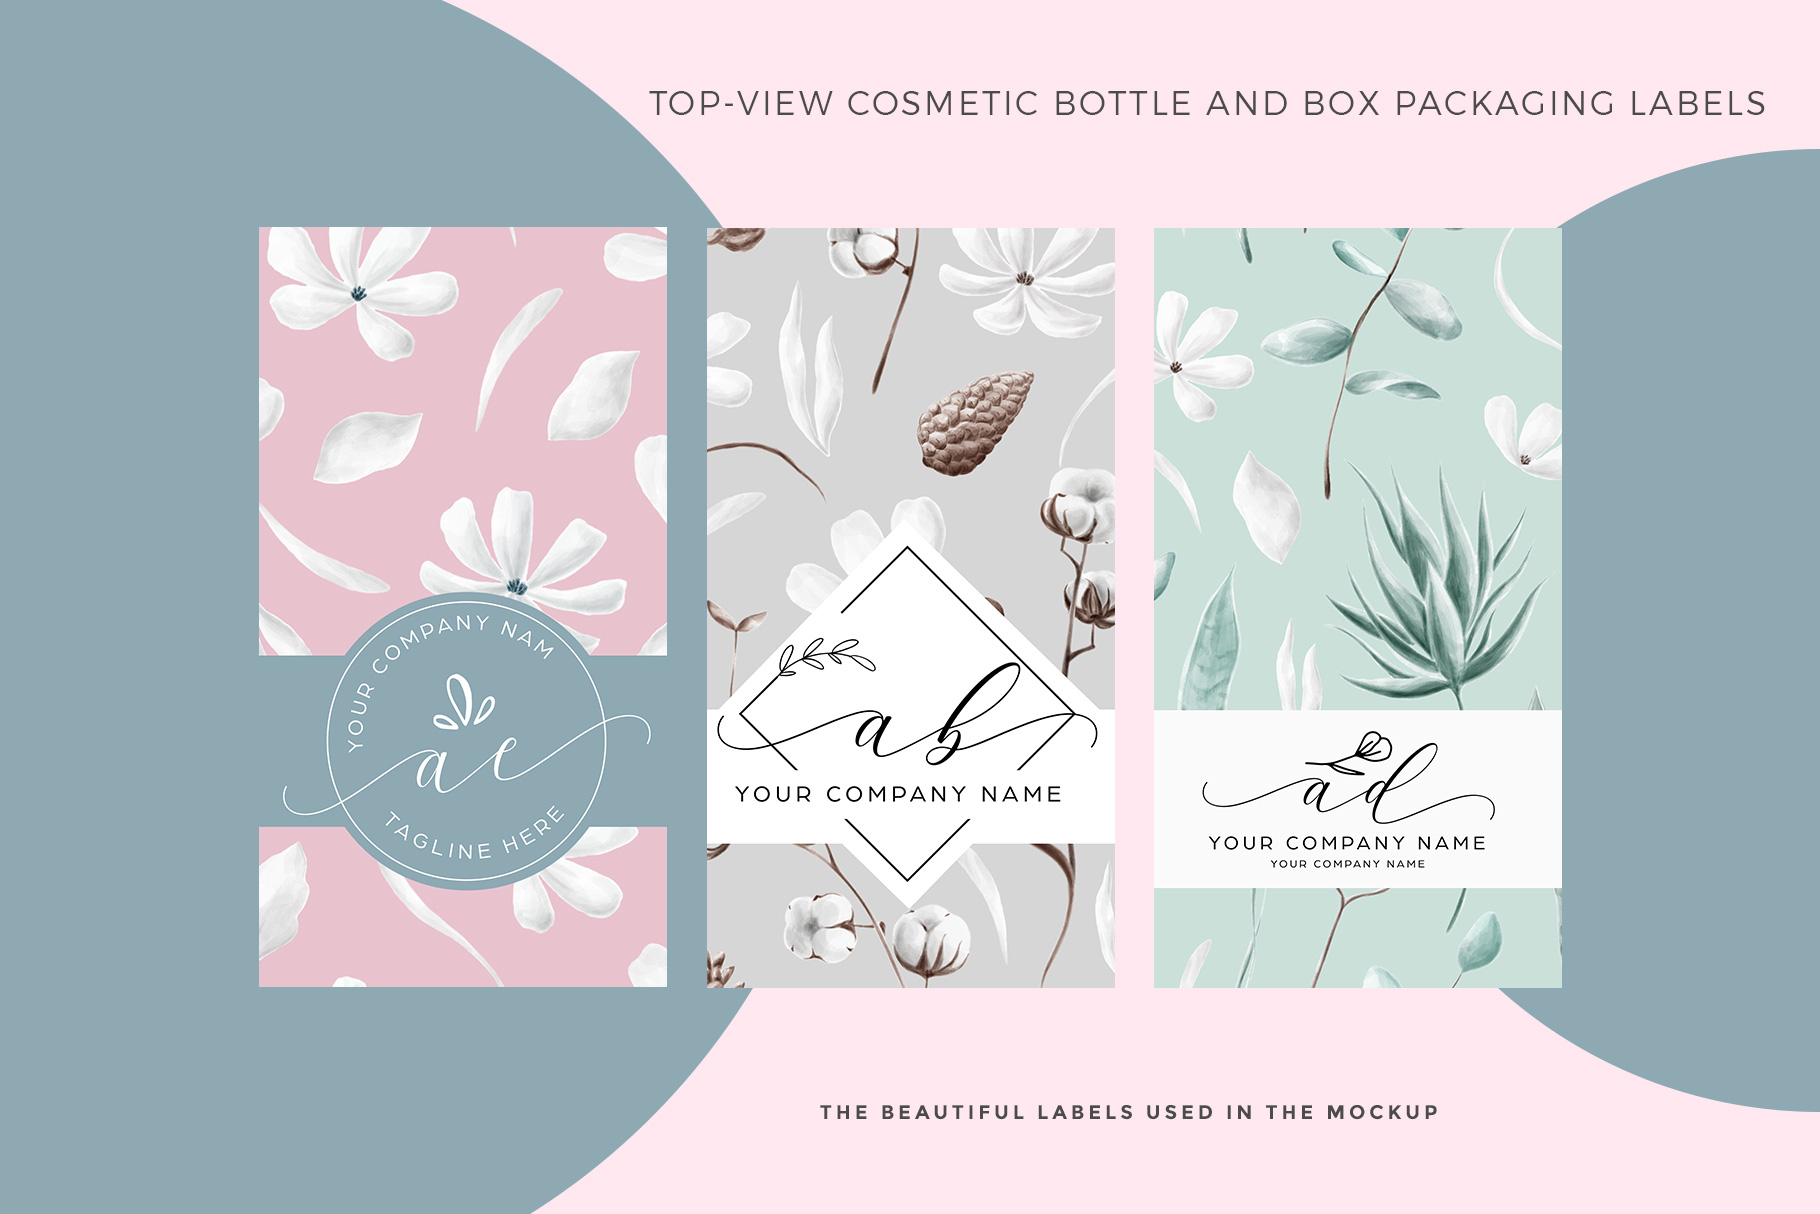 label design examples of the top view cosmetic bottle and box packaging mockup